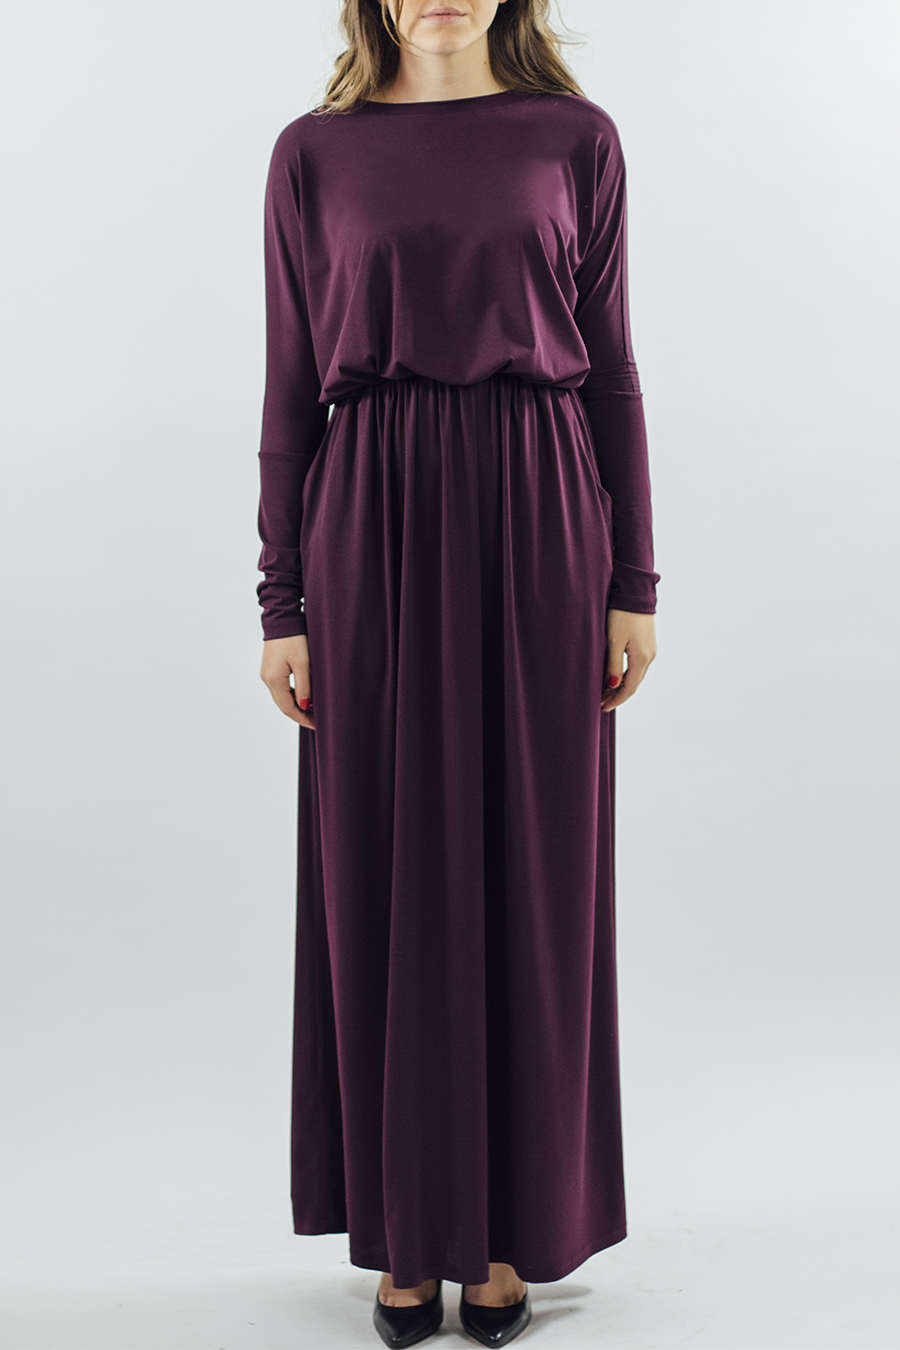 Signature/Dress - Plum